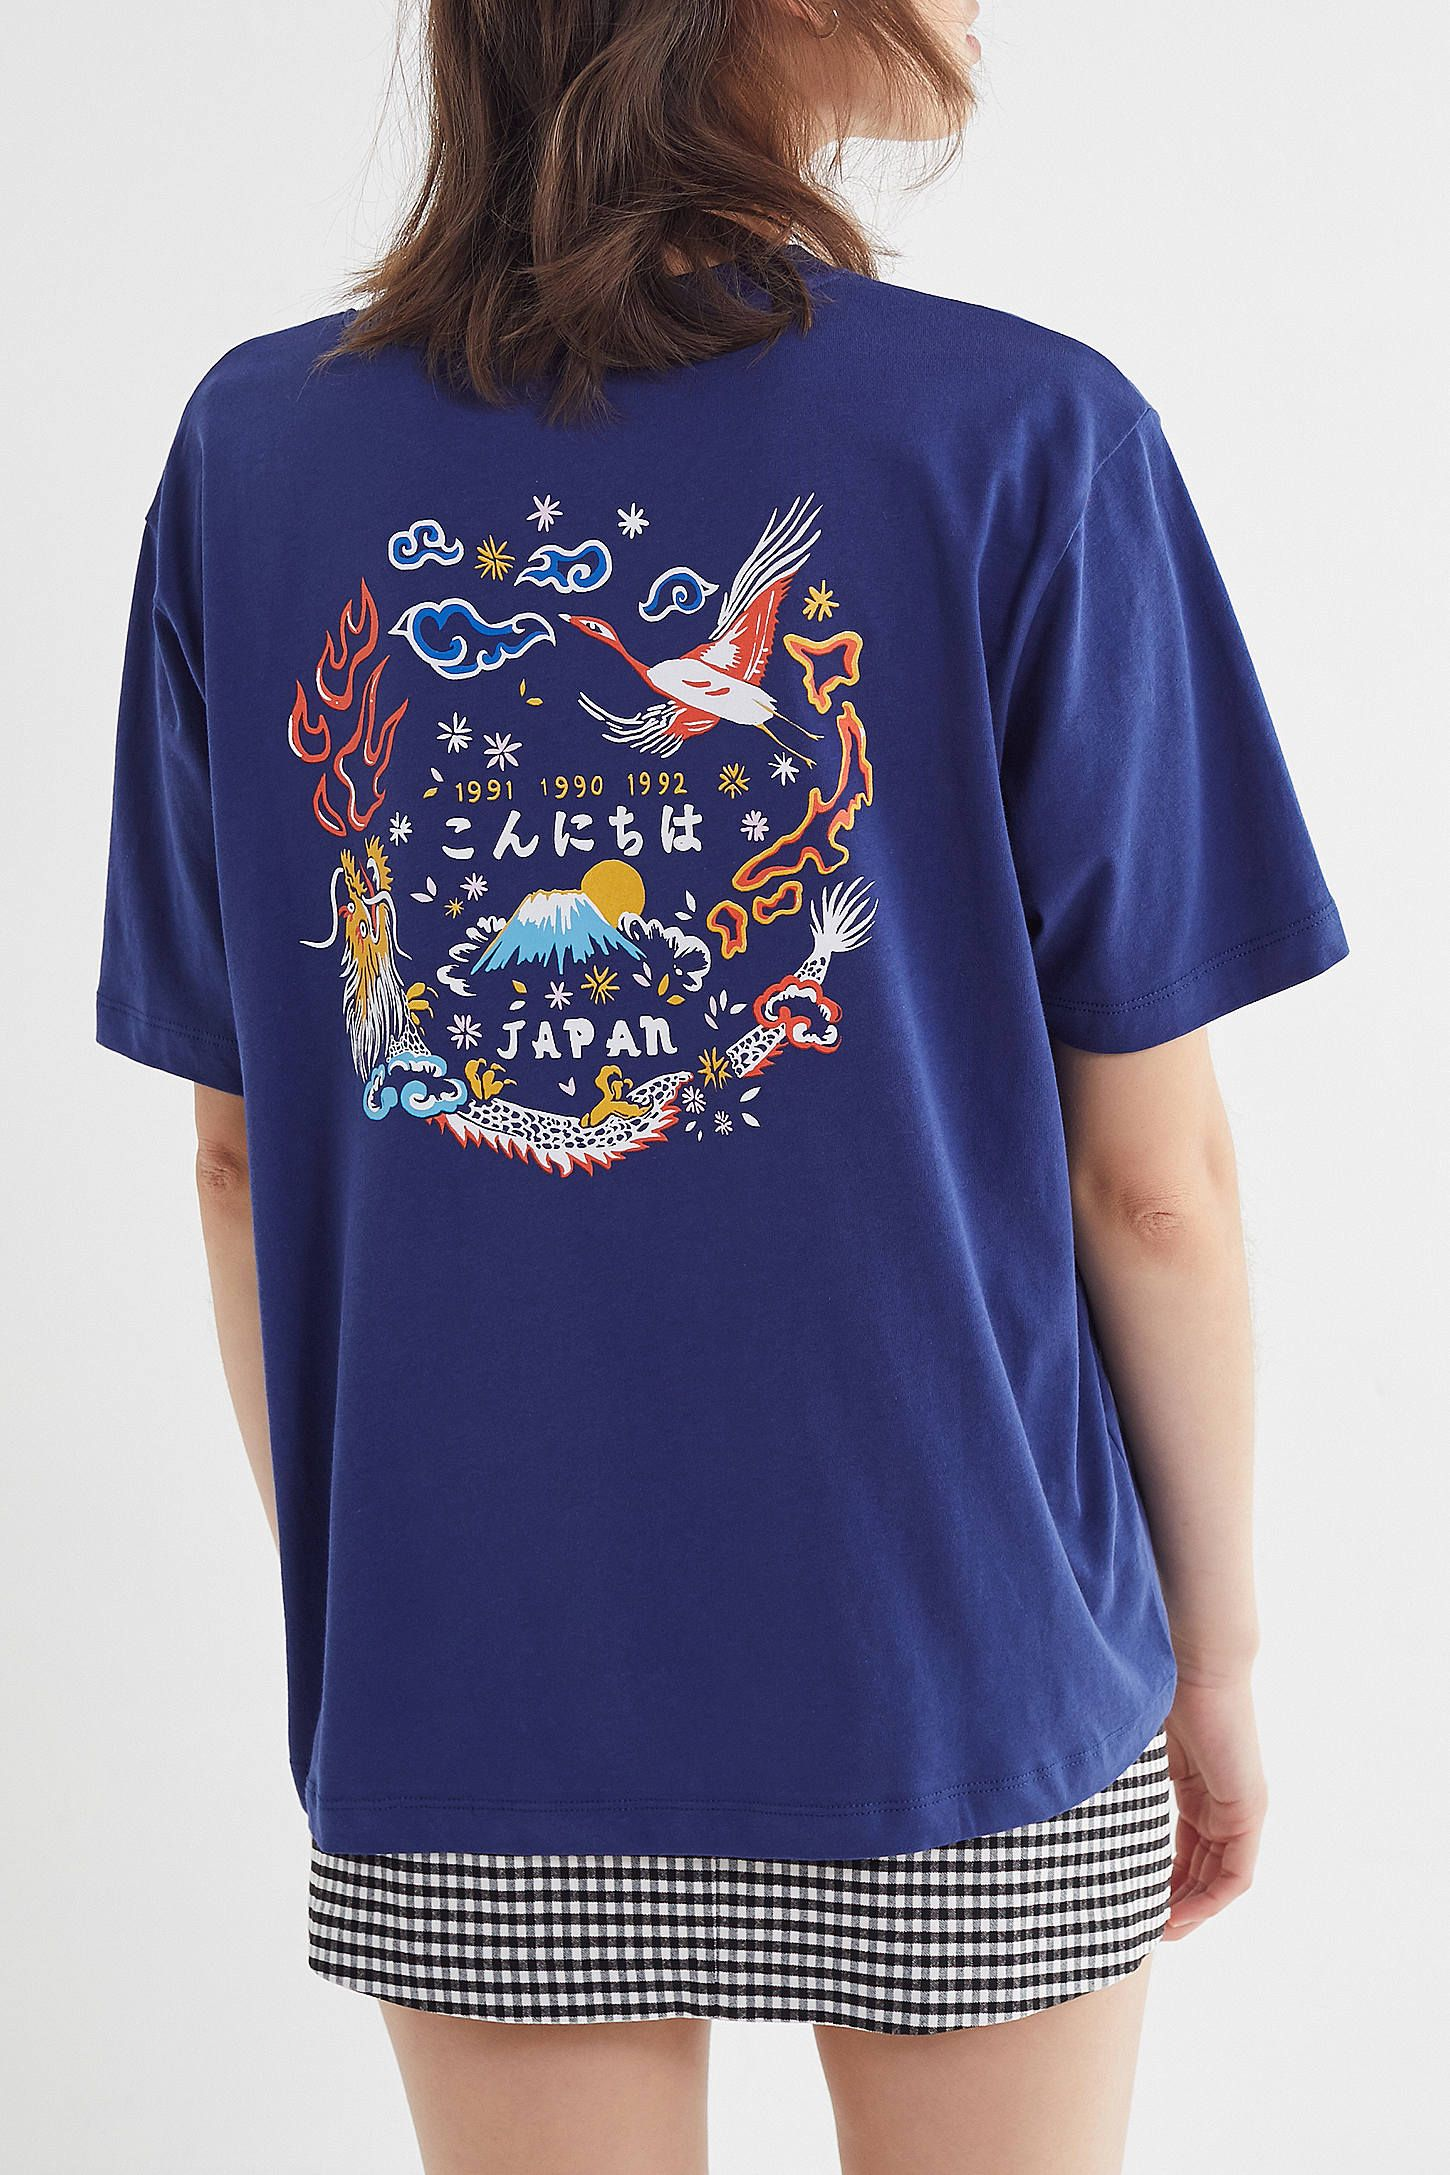 bc3610250 Embroidered Japanese Art Tee in 2019 | Half | Japanese art, Graphic ...